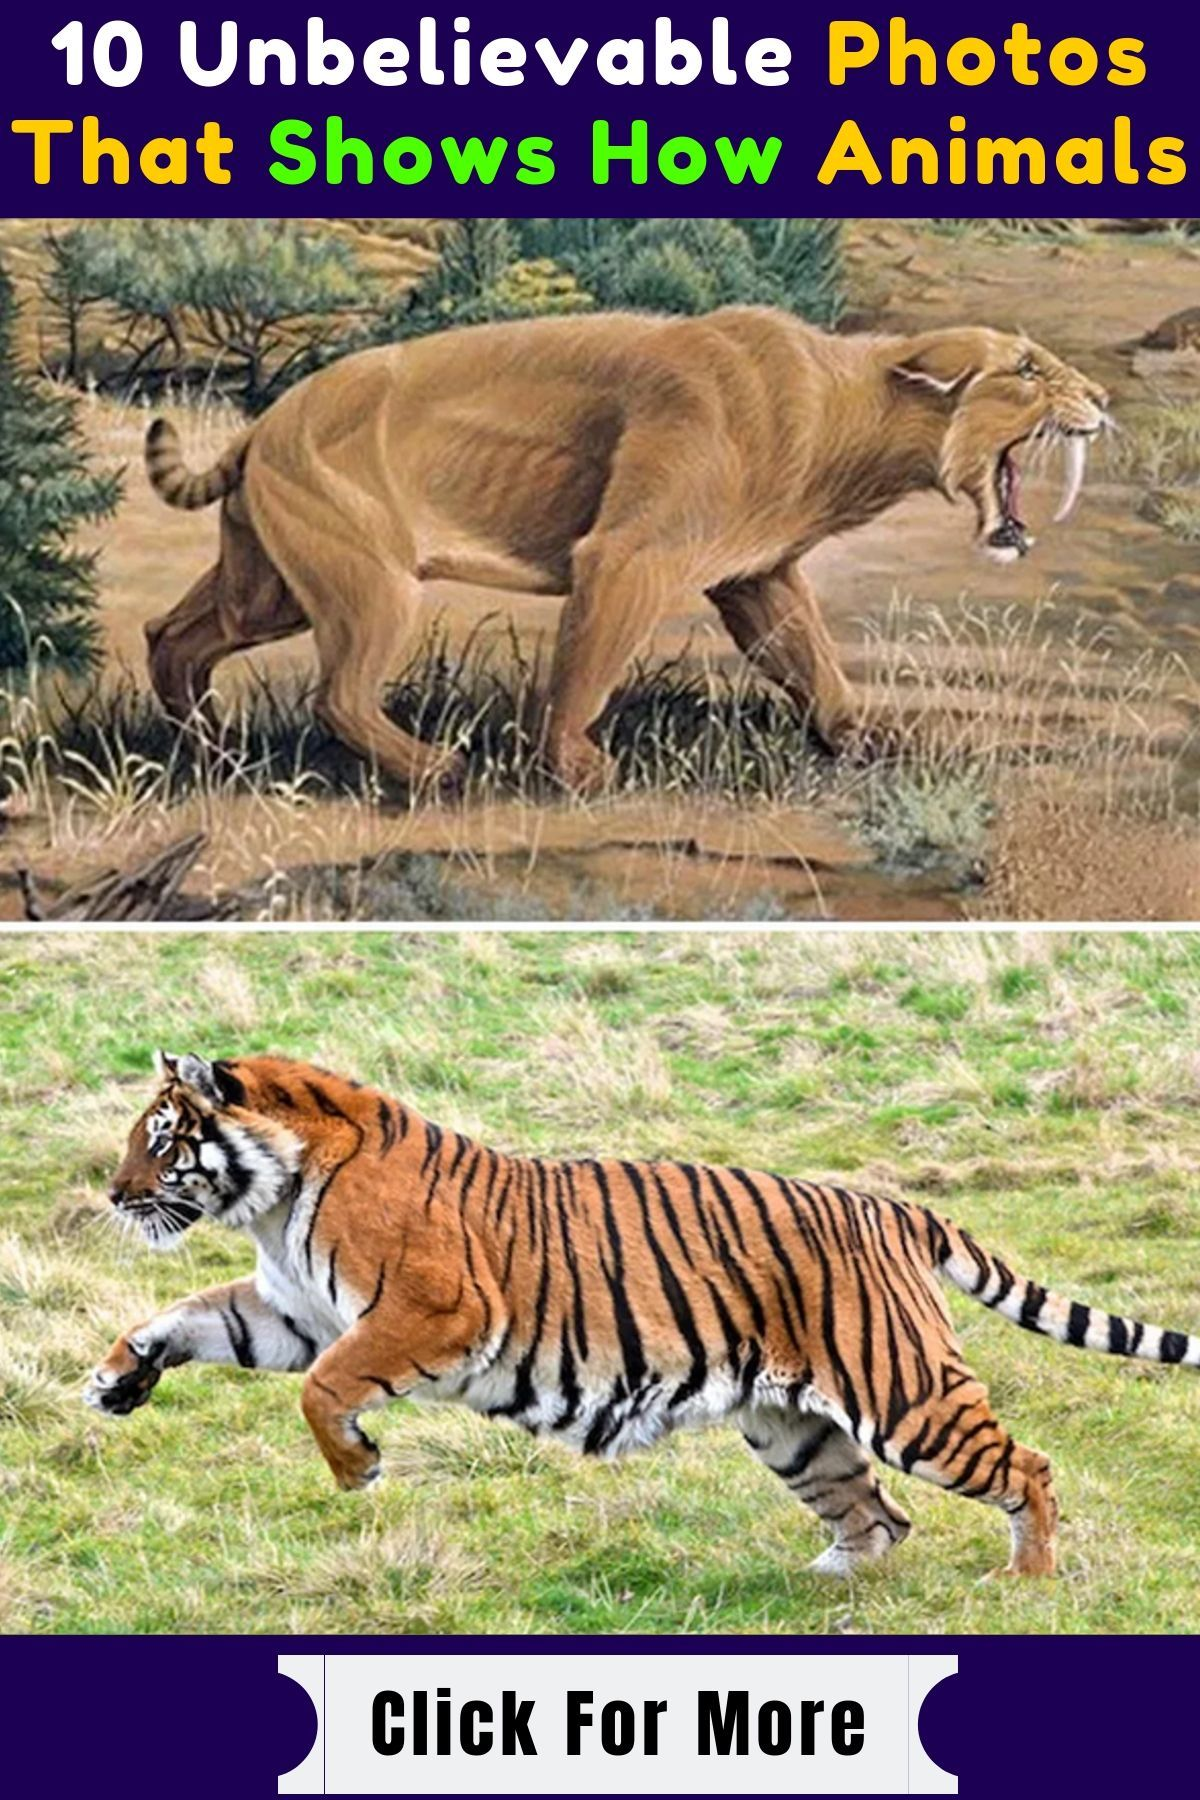 10 Unbelievable Photos That Shows How Animals Have Evolved Over